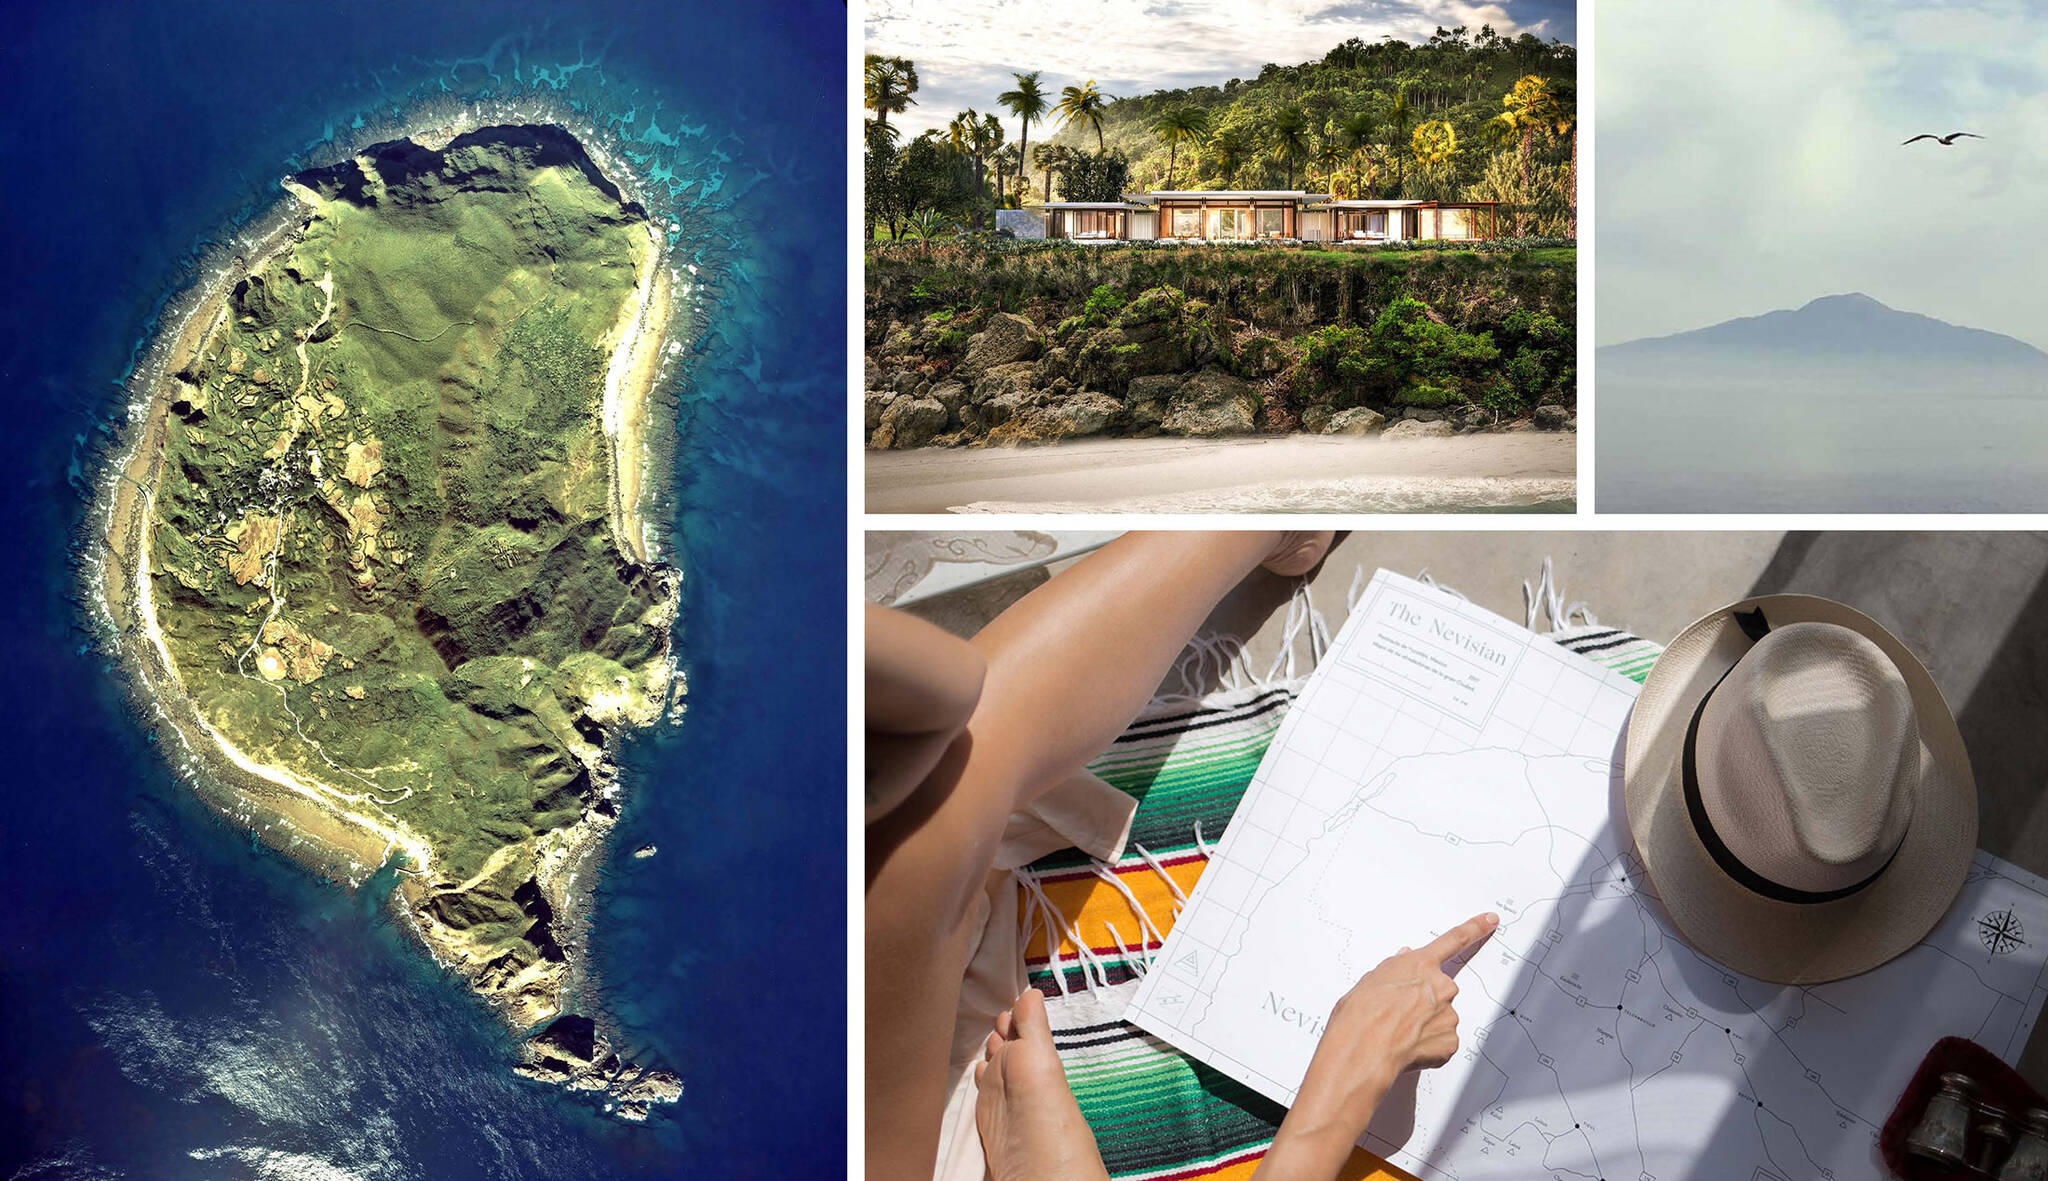 Moodboard of the look and feel of the Nevisian Luxury Resort project designed by the architecture studio Danny Forster & Architecture. A luxury resort with restaurants, villas, spas, a conference center, and the world's first 5-star modular hotel located in Nevis island in the Lesser Antilles